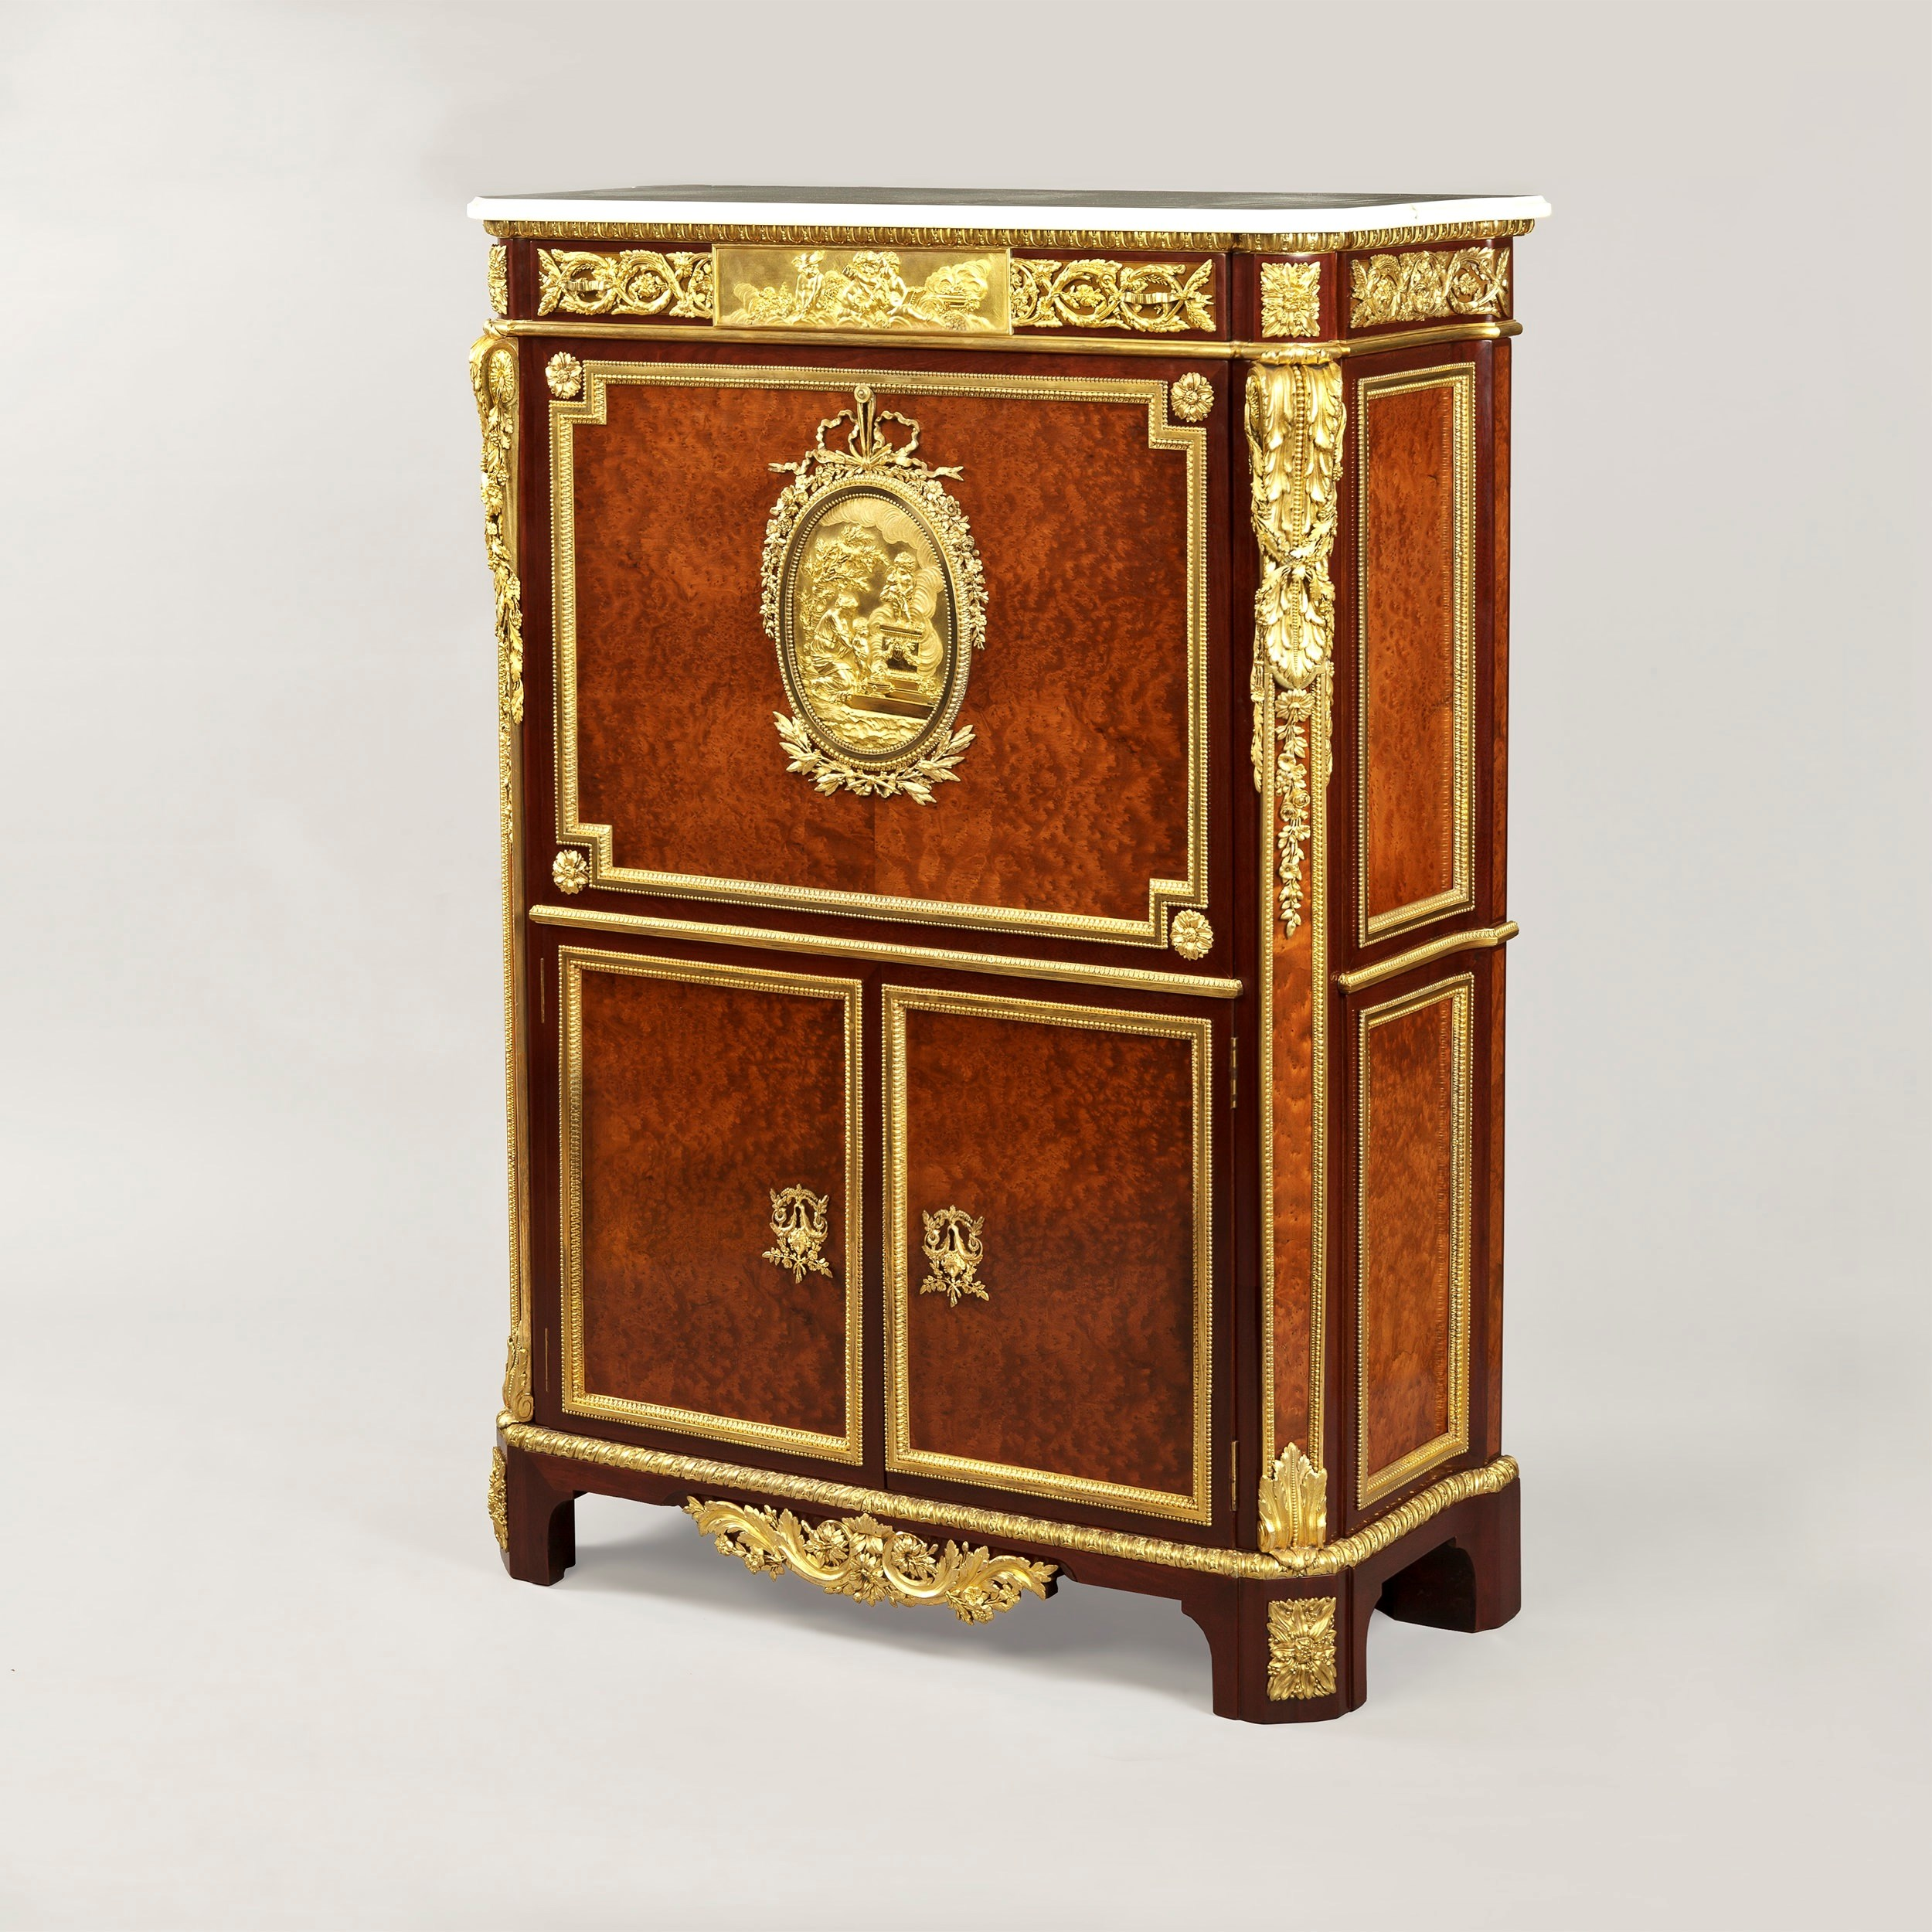 An Exceptionally Rare Secrétaire,  After the J.H. Riesener example in The Wallace Collection  Of upright rectangular form with canted corners; veneered in thuya-wood, and banded in purple-wood, exuberantly dressed with gilt bronze mounts of the highest quality, and having a Carrara marble top. Rising from bracket feet, the lower apron has a strong gilt bronze mount of stiff leaf acanthus foliates and volutes; the lower section has two lockable doors, with laurel wreathed escutcheons, the recessed panels, with gilt bronze frames, enclosing a shelf fitted interior. Over, the counter weighted lockable fall front has conforming recessed panels, mounted with a stepped gilt bronze indented band, the corners with rosettes of bay leaves, interspersed with berries. At the centre, an elliptical gilt bronze panel, depicting 'A Sacrifice to Love', a classically dressed woman presenting an infant to Cupid, who stands on a pedestal, wreathed by the scent from a brazier. The plaque has ribbon tied flowers, including roses, myrtle, narcissi and lilies-of-the-valley above, and below. The fall front encloses an interior fitted with drawers and pigeonholes.  The top frieze houses a drawer, having a centrally posited rectangular plaque, depicting three infants, one playing with a spaniel, one holding an open book, and handing a letter to the third infant, who wears the winged cap of Mercury, and has his caduceus at hand. The plaque issues sprays of roses, pinks, carnations and other flowers, with rosaces at the angles.  Over, a gilt bronze egg and dart band frames the shaped Carrara top. The canted front angles are pilasters, mounted with gilt bronze spandrels, cast as stiff leafed acanthus, having attached sprigs of oak leaves, berries and intertwined forget-me-nots, all within a gilt bronze stepped band.  Below, smaller acanthus leaf spandrels are dressed with chased volutes.   The sides are recessed and housed within running gilt bronze bands as seen on the lower doors, with a guard band betwixt the upper and lower sections.  Chubb locks, (marked with their London address, 128 Queen Victoria Street, and 'Detector', their special virtually unpickable lock) are fitted. England, Circa 1900  Dimensions: H: 54.5 in / 138 cm   W: 40 in / 102 cm   D: 17 in / 43 cm  Jean-Henri Riesener (1734-1806) born in Westphalia, and arrived in Paris in 1755, gaining employment at the atelier of Jean-François Oeben. After Oeben's death, he married his widow, Francçoise, and took over the workshop, became a 'maitre ebeniste' in 1768, and was appointed 'Furniture Maker to the King Louis XVI' in 1774.  His masterful interpretation of the French Neo-Classical manner, married to sublime workmanship is represented in museums world wide, including, the Victoria and Albert, The Royal Collection at Buckingham Palace, The Wallace Collection, the Metropolitan Museum of Art, Getty Museum, Philadelphia Museum of Fine Art, Chicago Art Institute, the Frick Collection, Chateaux des Chantilly, Fontainebleau and Compiegne, and the Louvre, inter alia  The Riesener Secretaire in the Wallace Collection  Originally delivered, along with other pieces, in February 1783 for Marie-Antoinette's private rooms at Versailles, it was confiscated after the Revolution, and re-appeared in Russia in 1865, where it was purchased from Count Koucheleff Bezborodko, by Frederick Davis, and thence resold to the 4th Marquess of Hertford, where it is recorded in his Parisian collection at Rue Laffiite in 1867.   Ref 8548